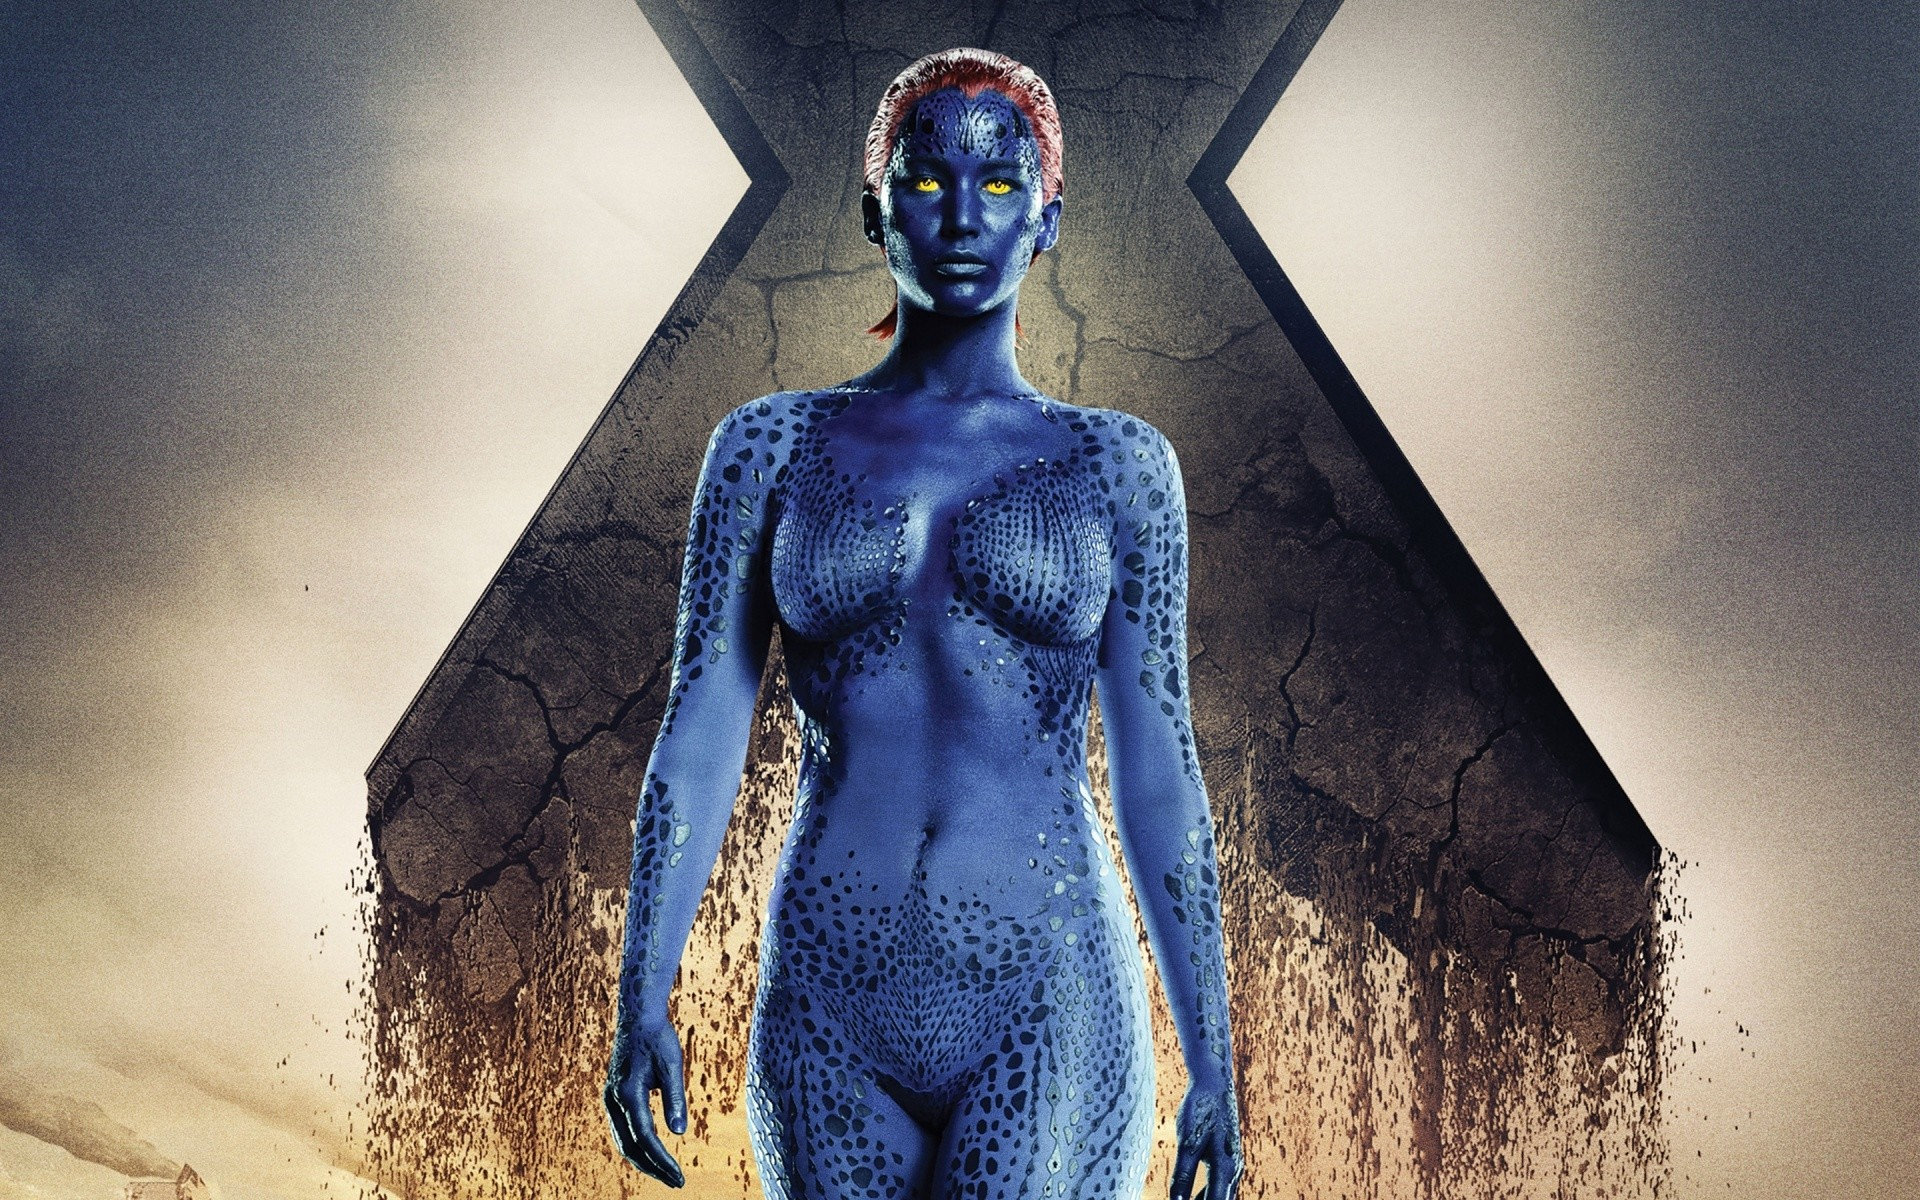 Movie Lovers Reviews: Jennifer Lawrence in X-Men: Days of